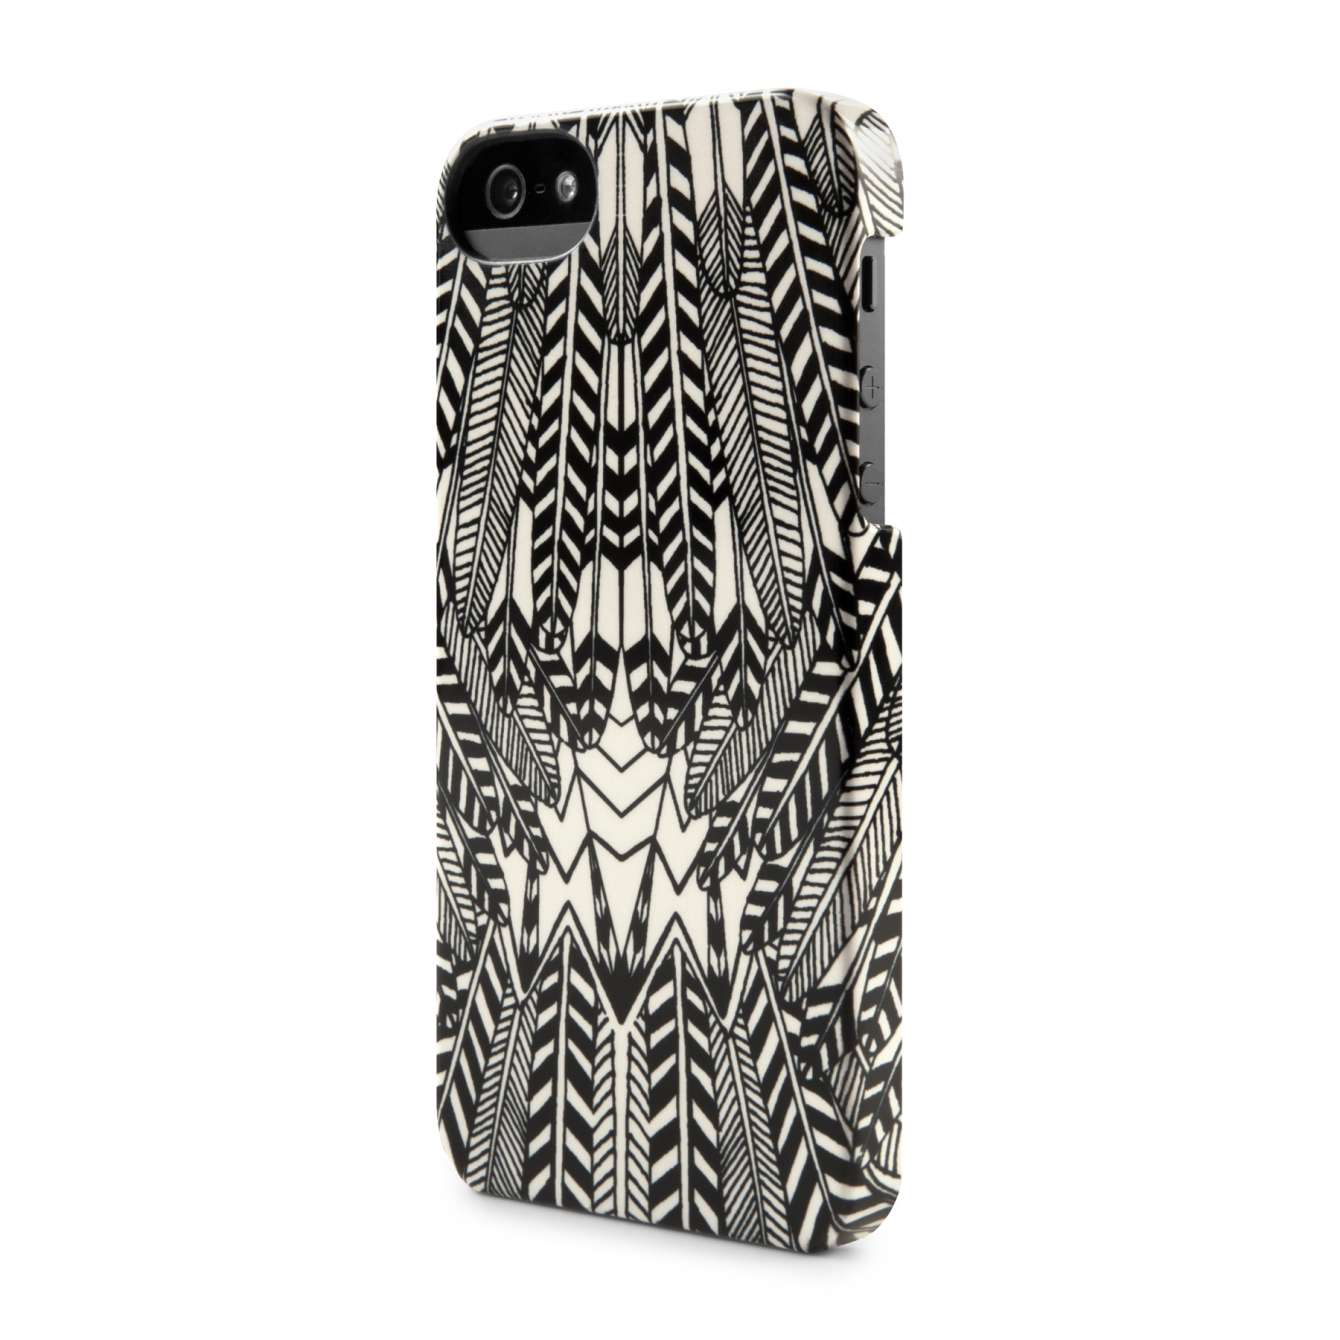 Mara Hoffman x Incase iPhone 5 Snap Cases-4